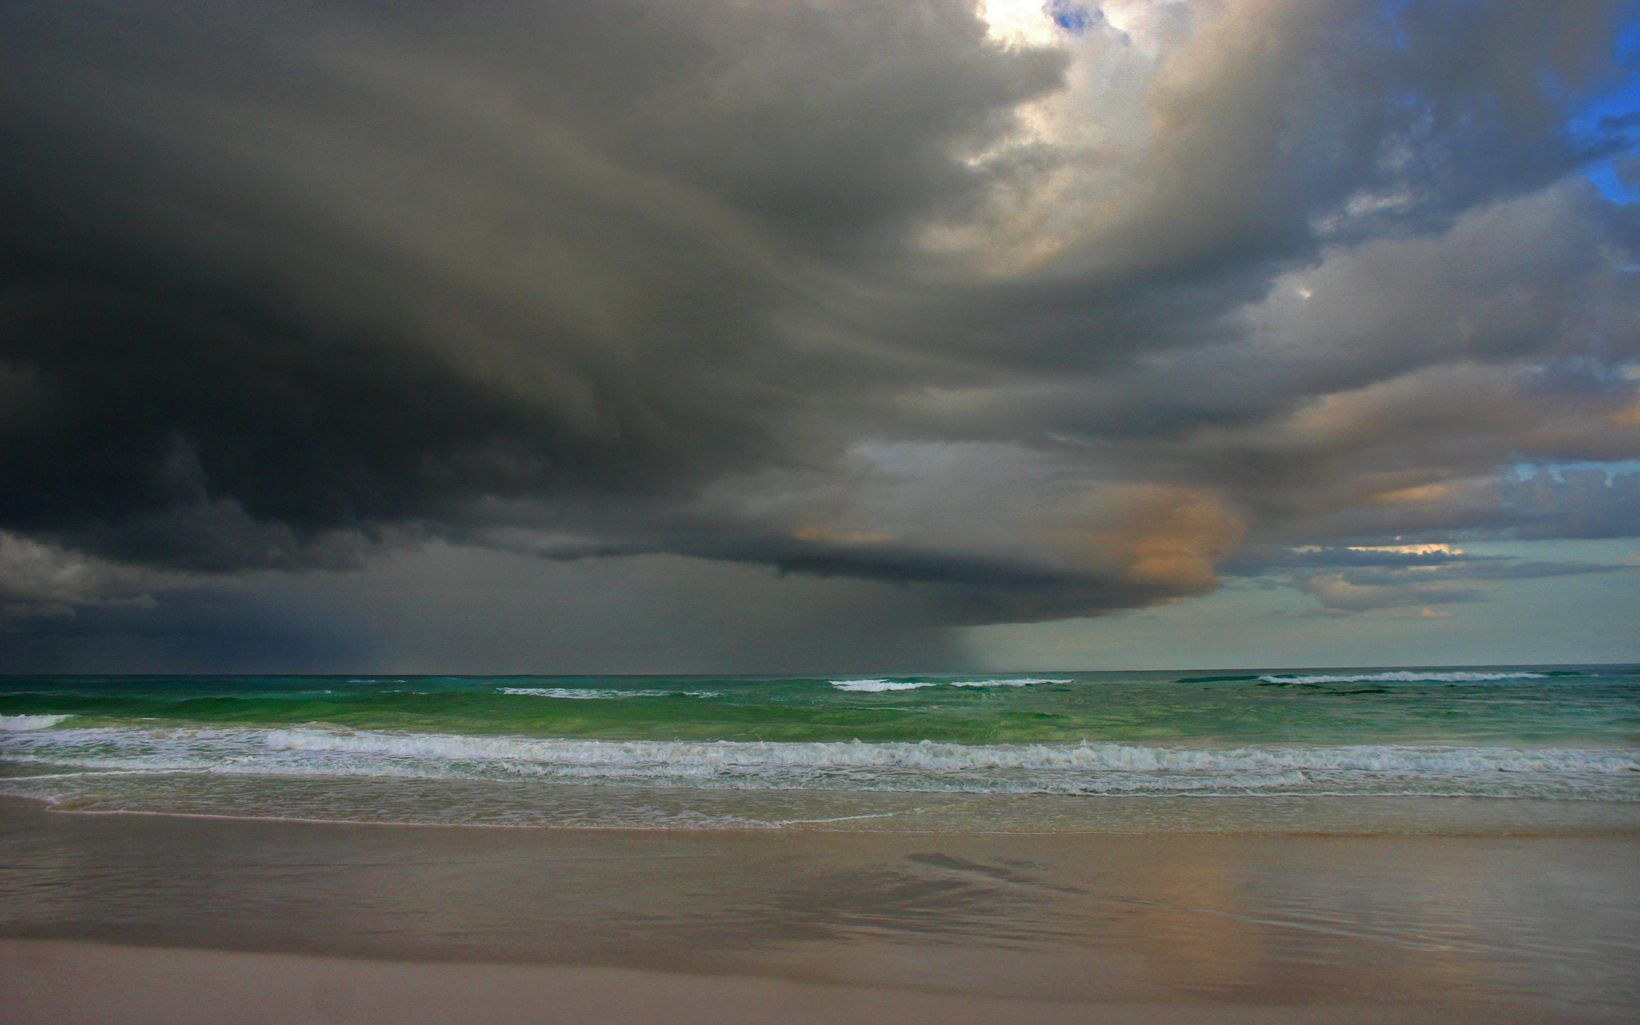 A powerful tropical thunderstorm moves along the coast.